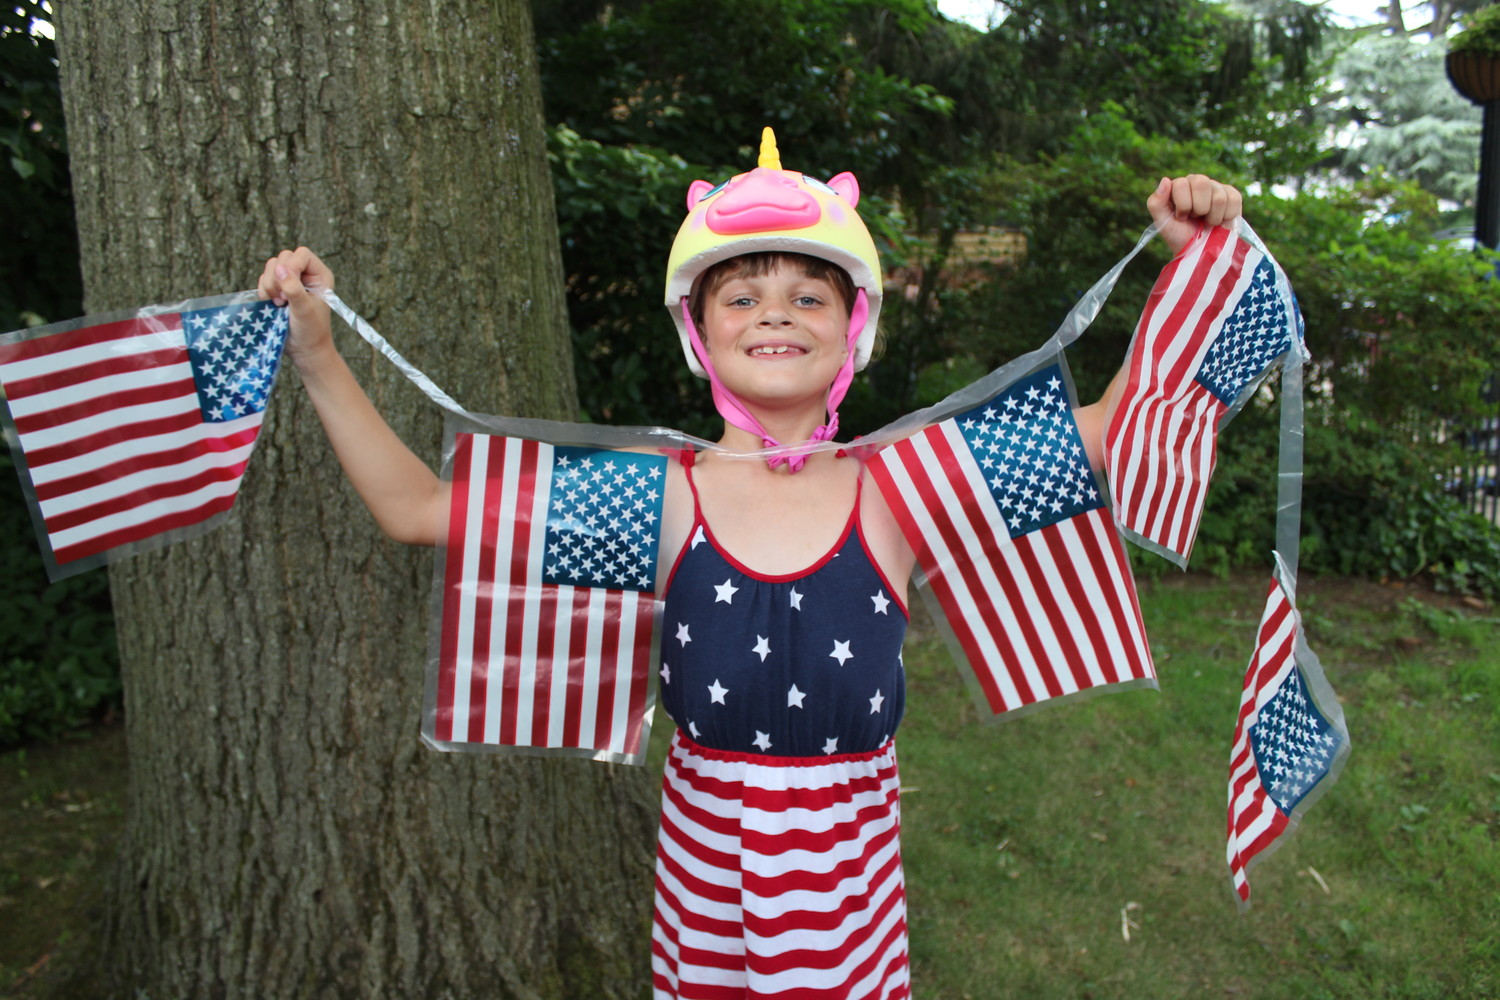 Lucy Jackson proudly held up an American flag banner, which matched her Fourth of July themed sundress.